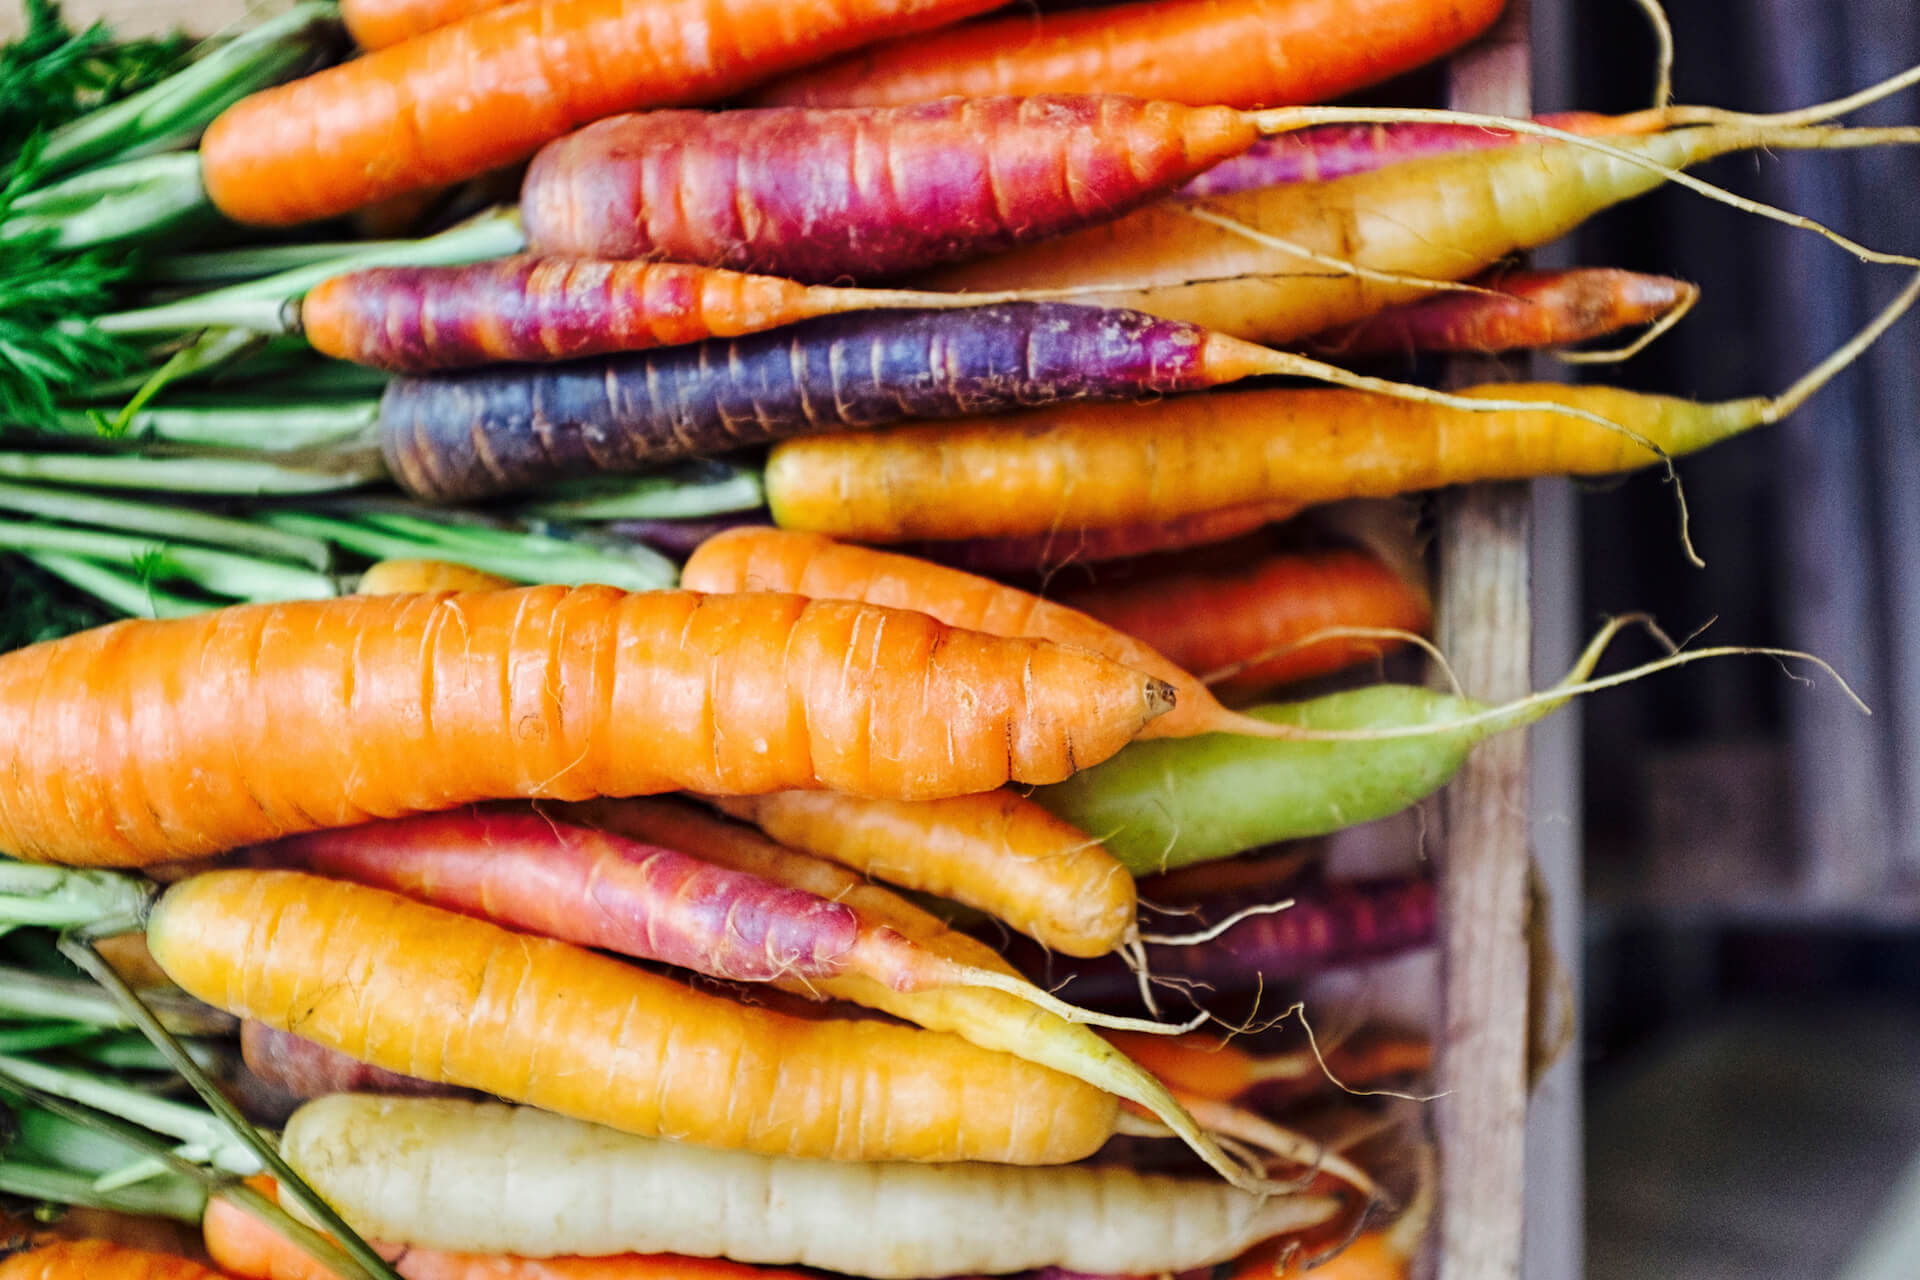 a basket full of different colored carrots.